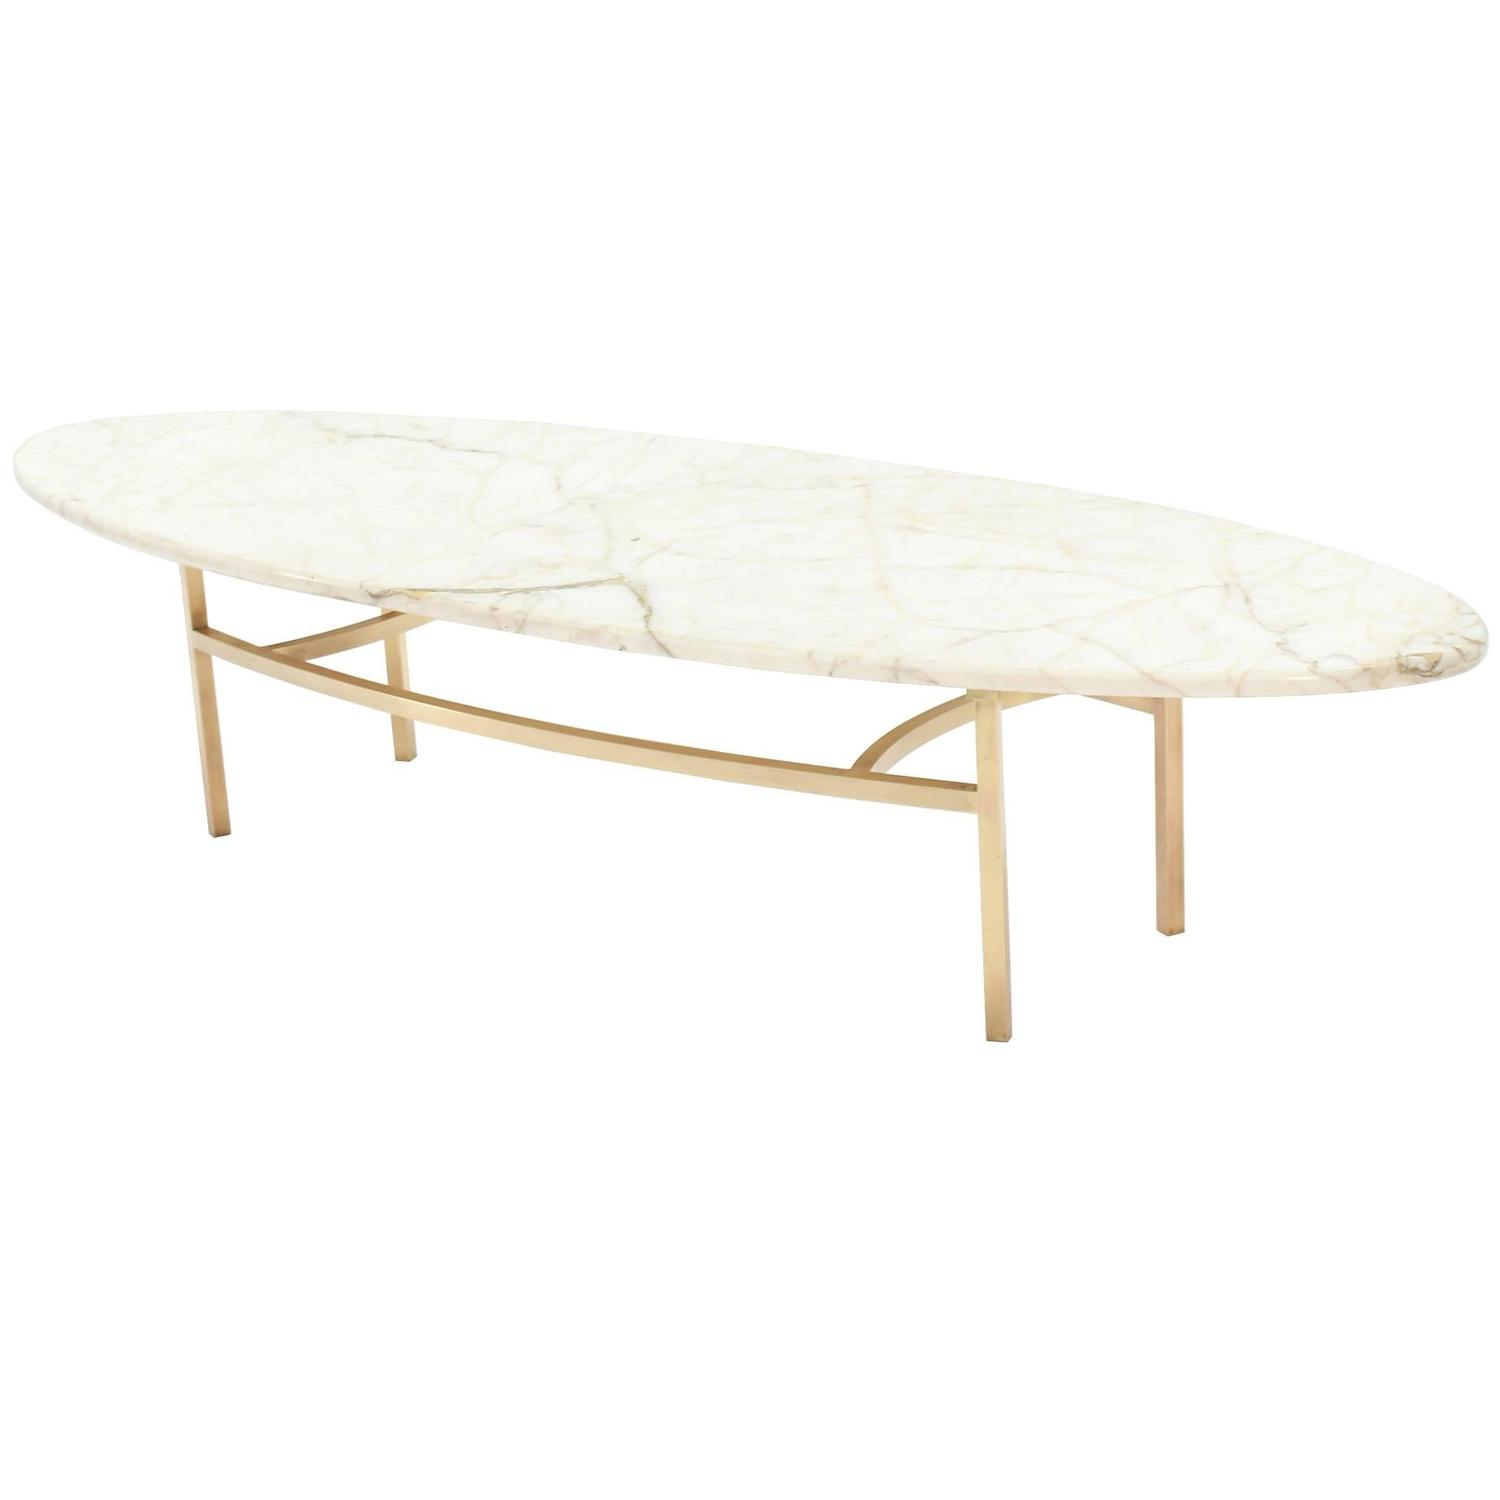 Brass and oval marble top mid century modern coffee table for Contemporary oval coffee tables